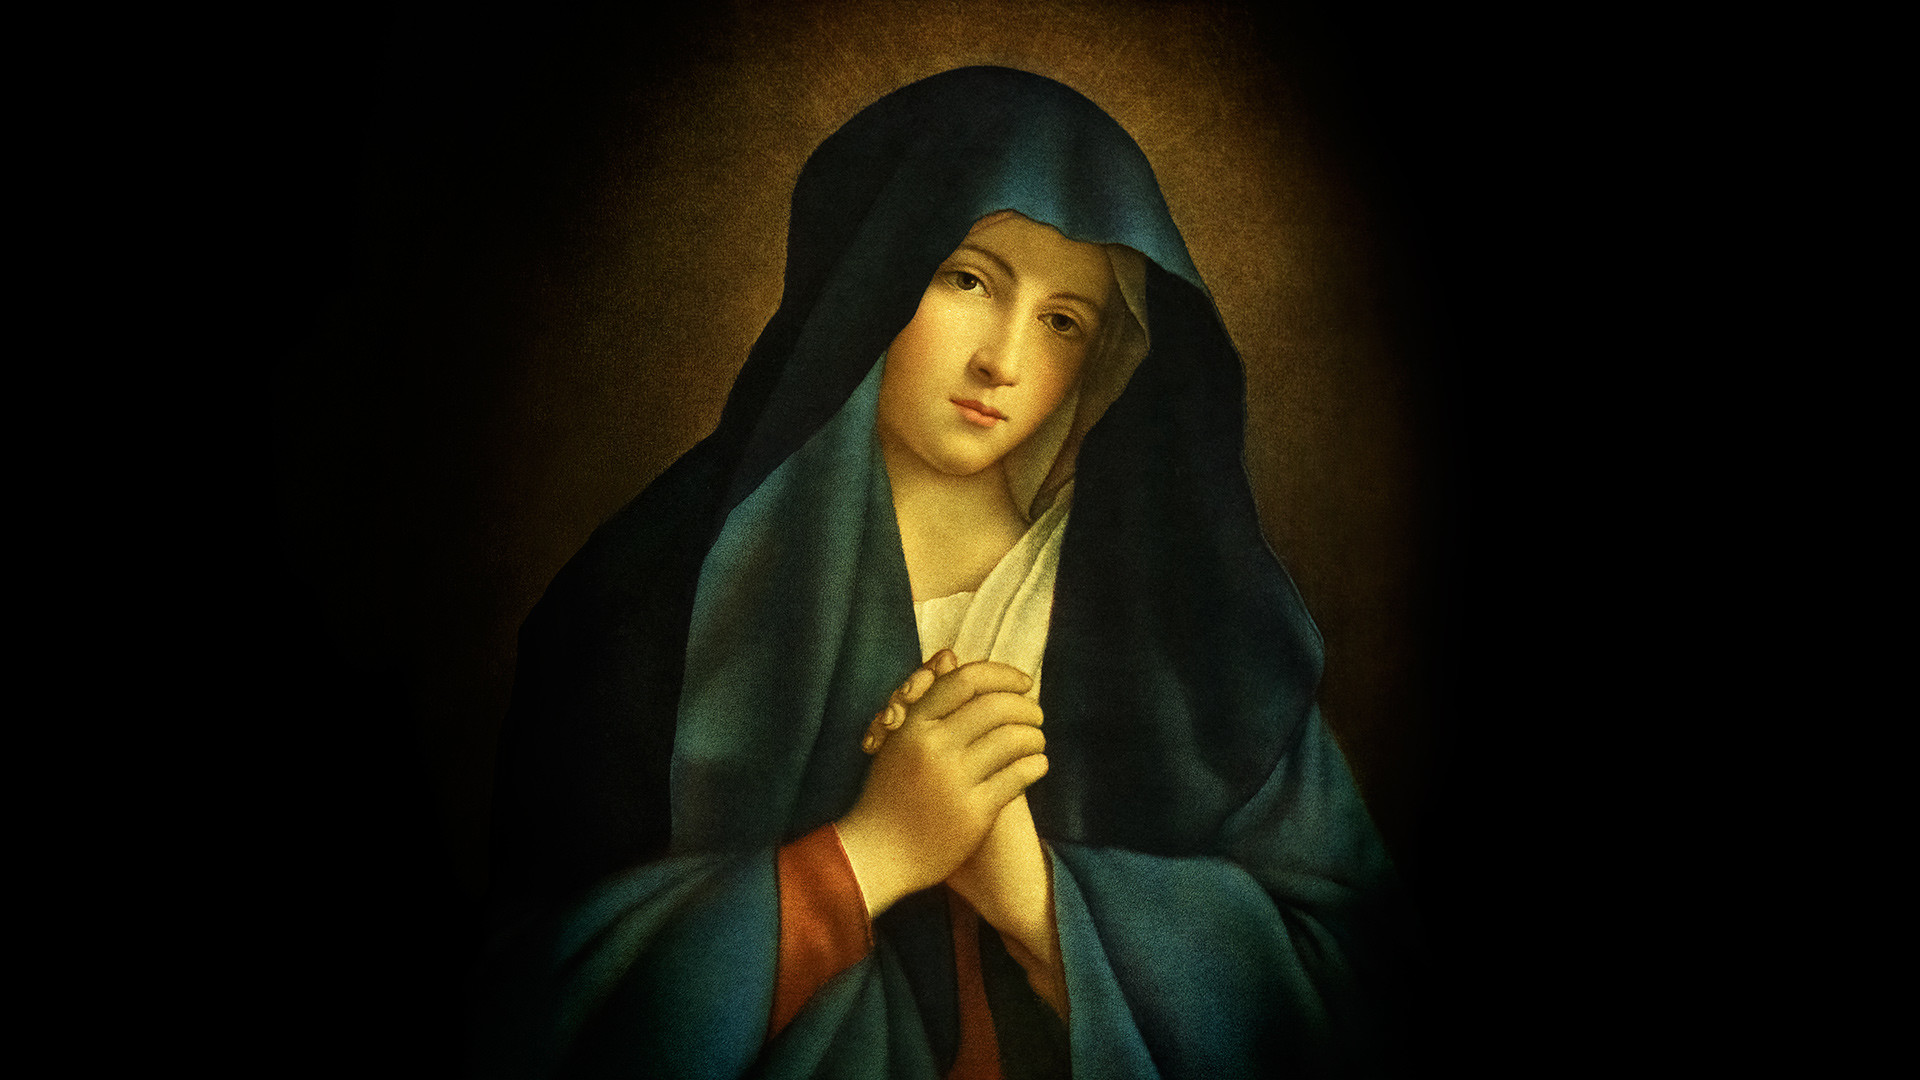 Mary Mother of God Wallpaper 40 images 1920x1080